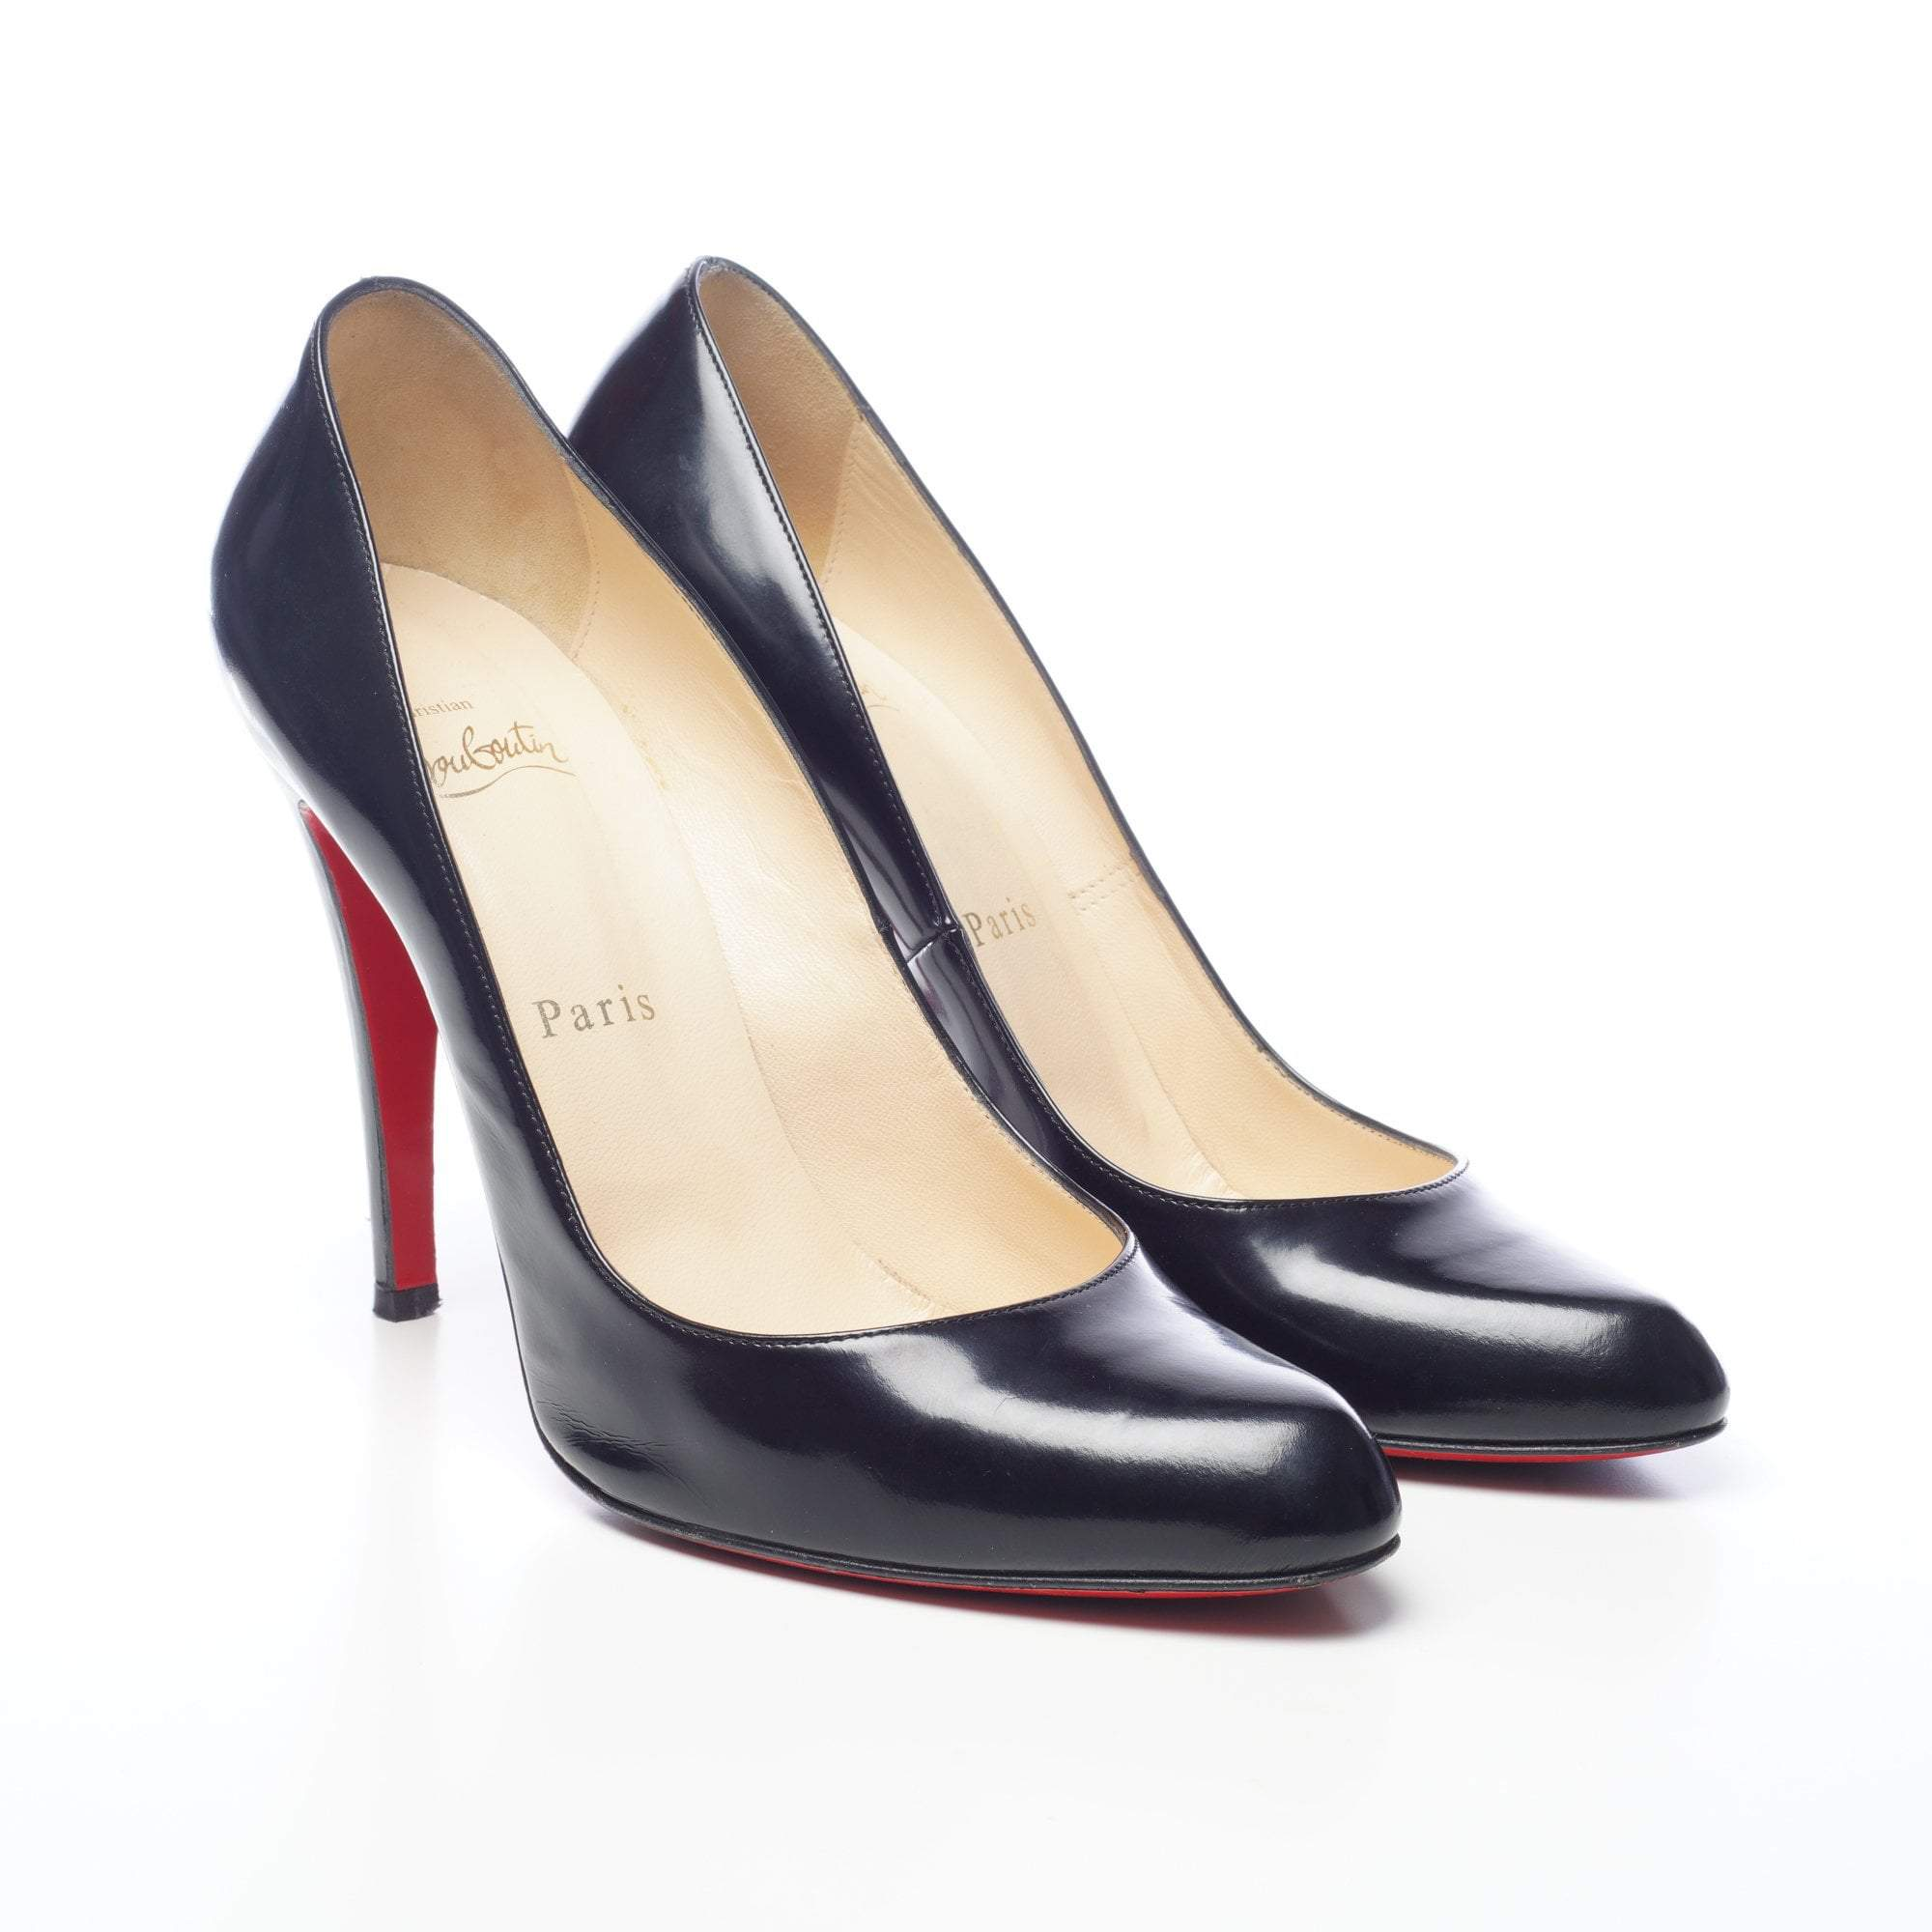 d6aeb8d273 Christian Louboutin Black Decollete 868 Jazz Calf Pumps – Garderobe